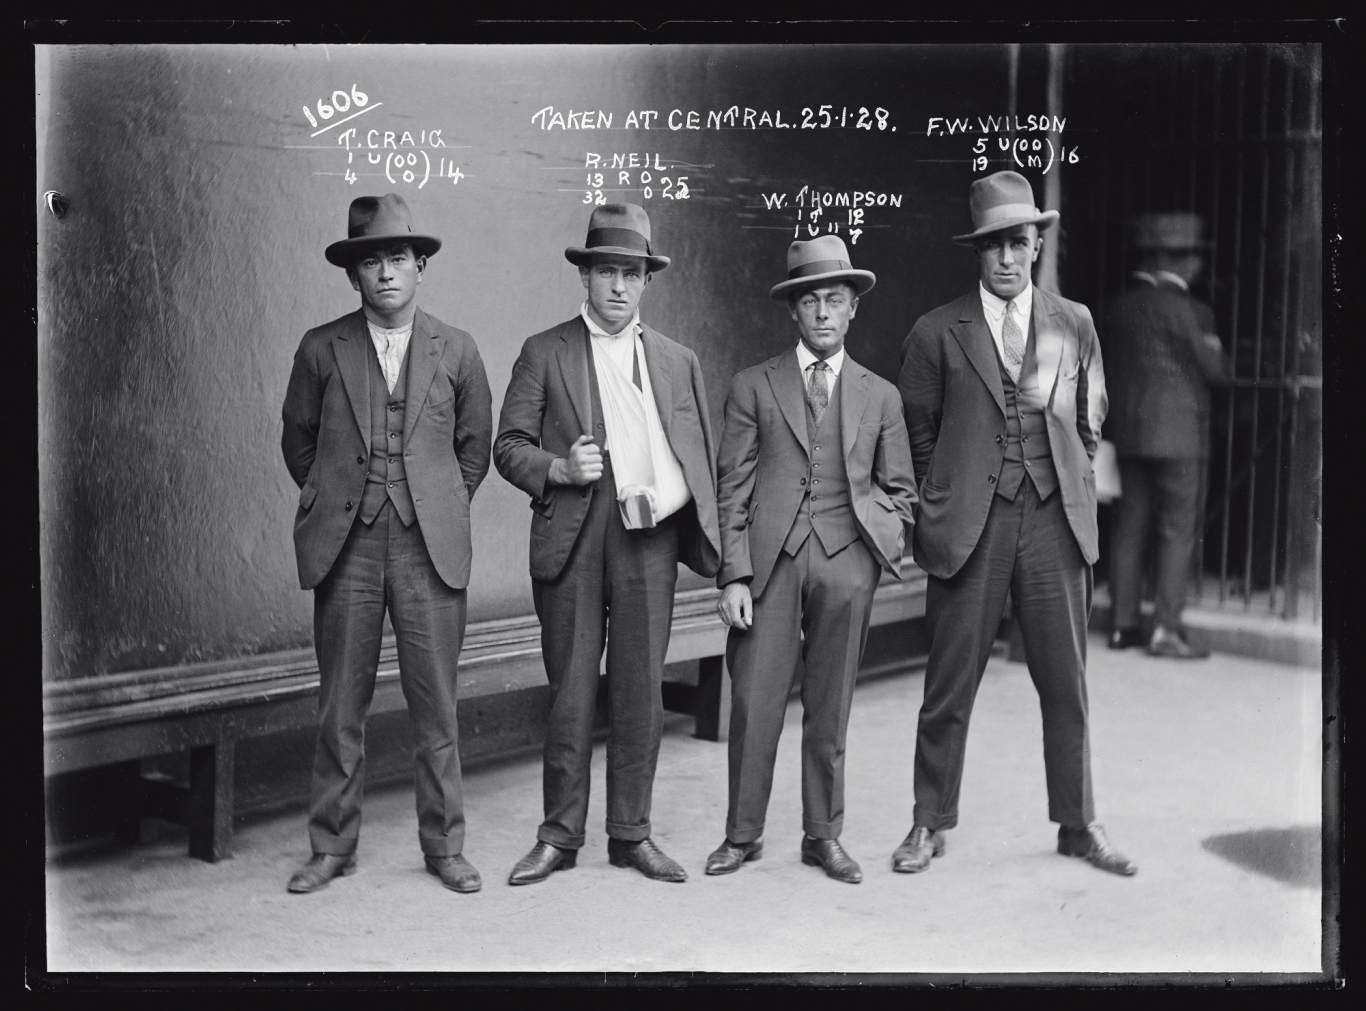 Black and white mugshot of four men standing with hats on.